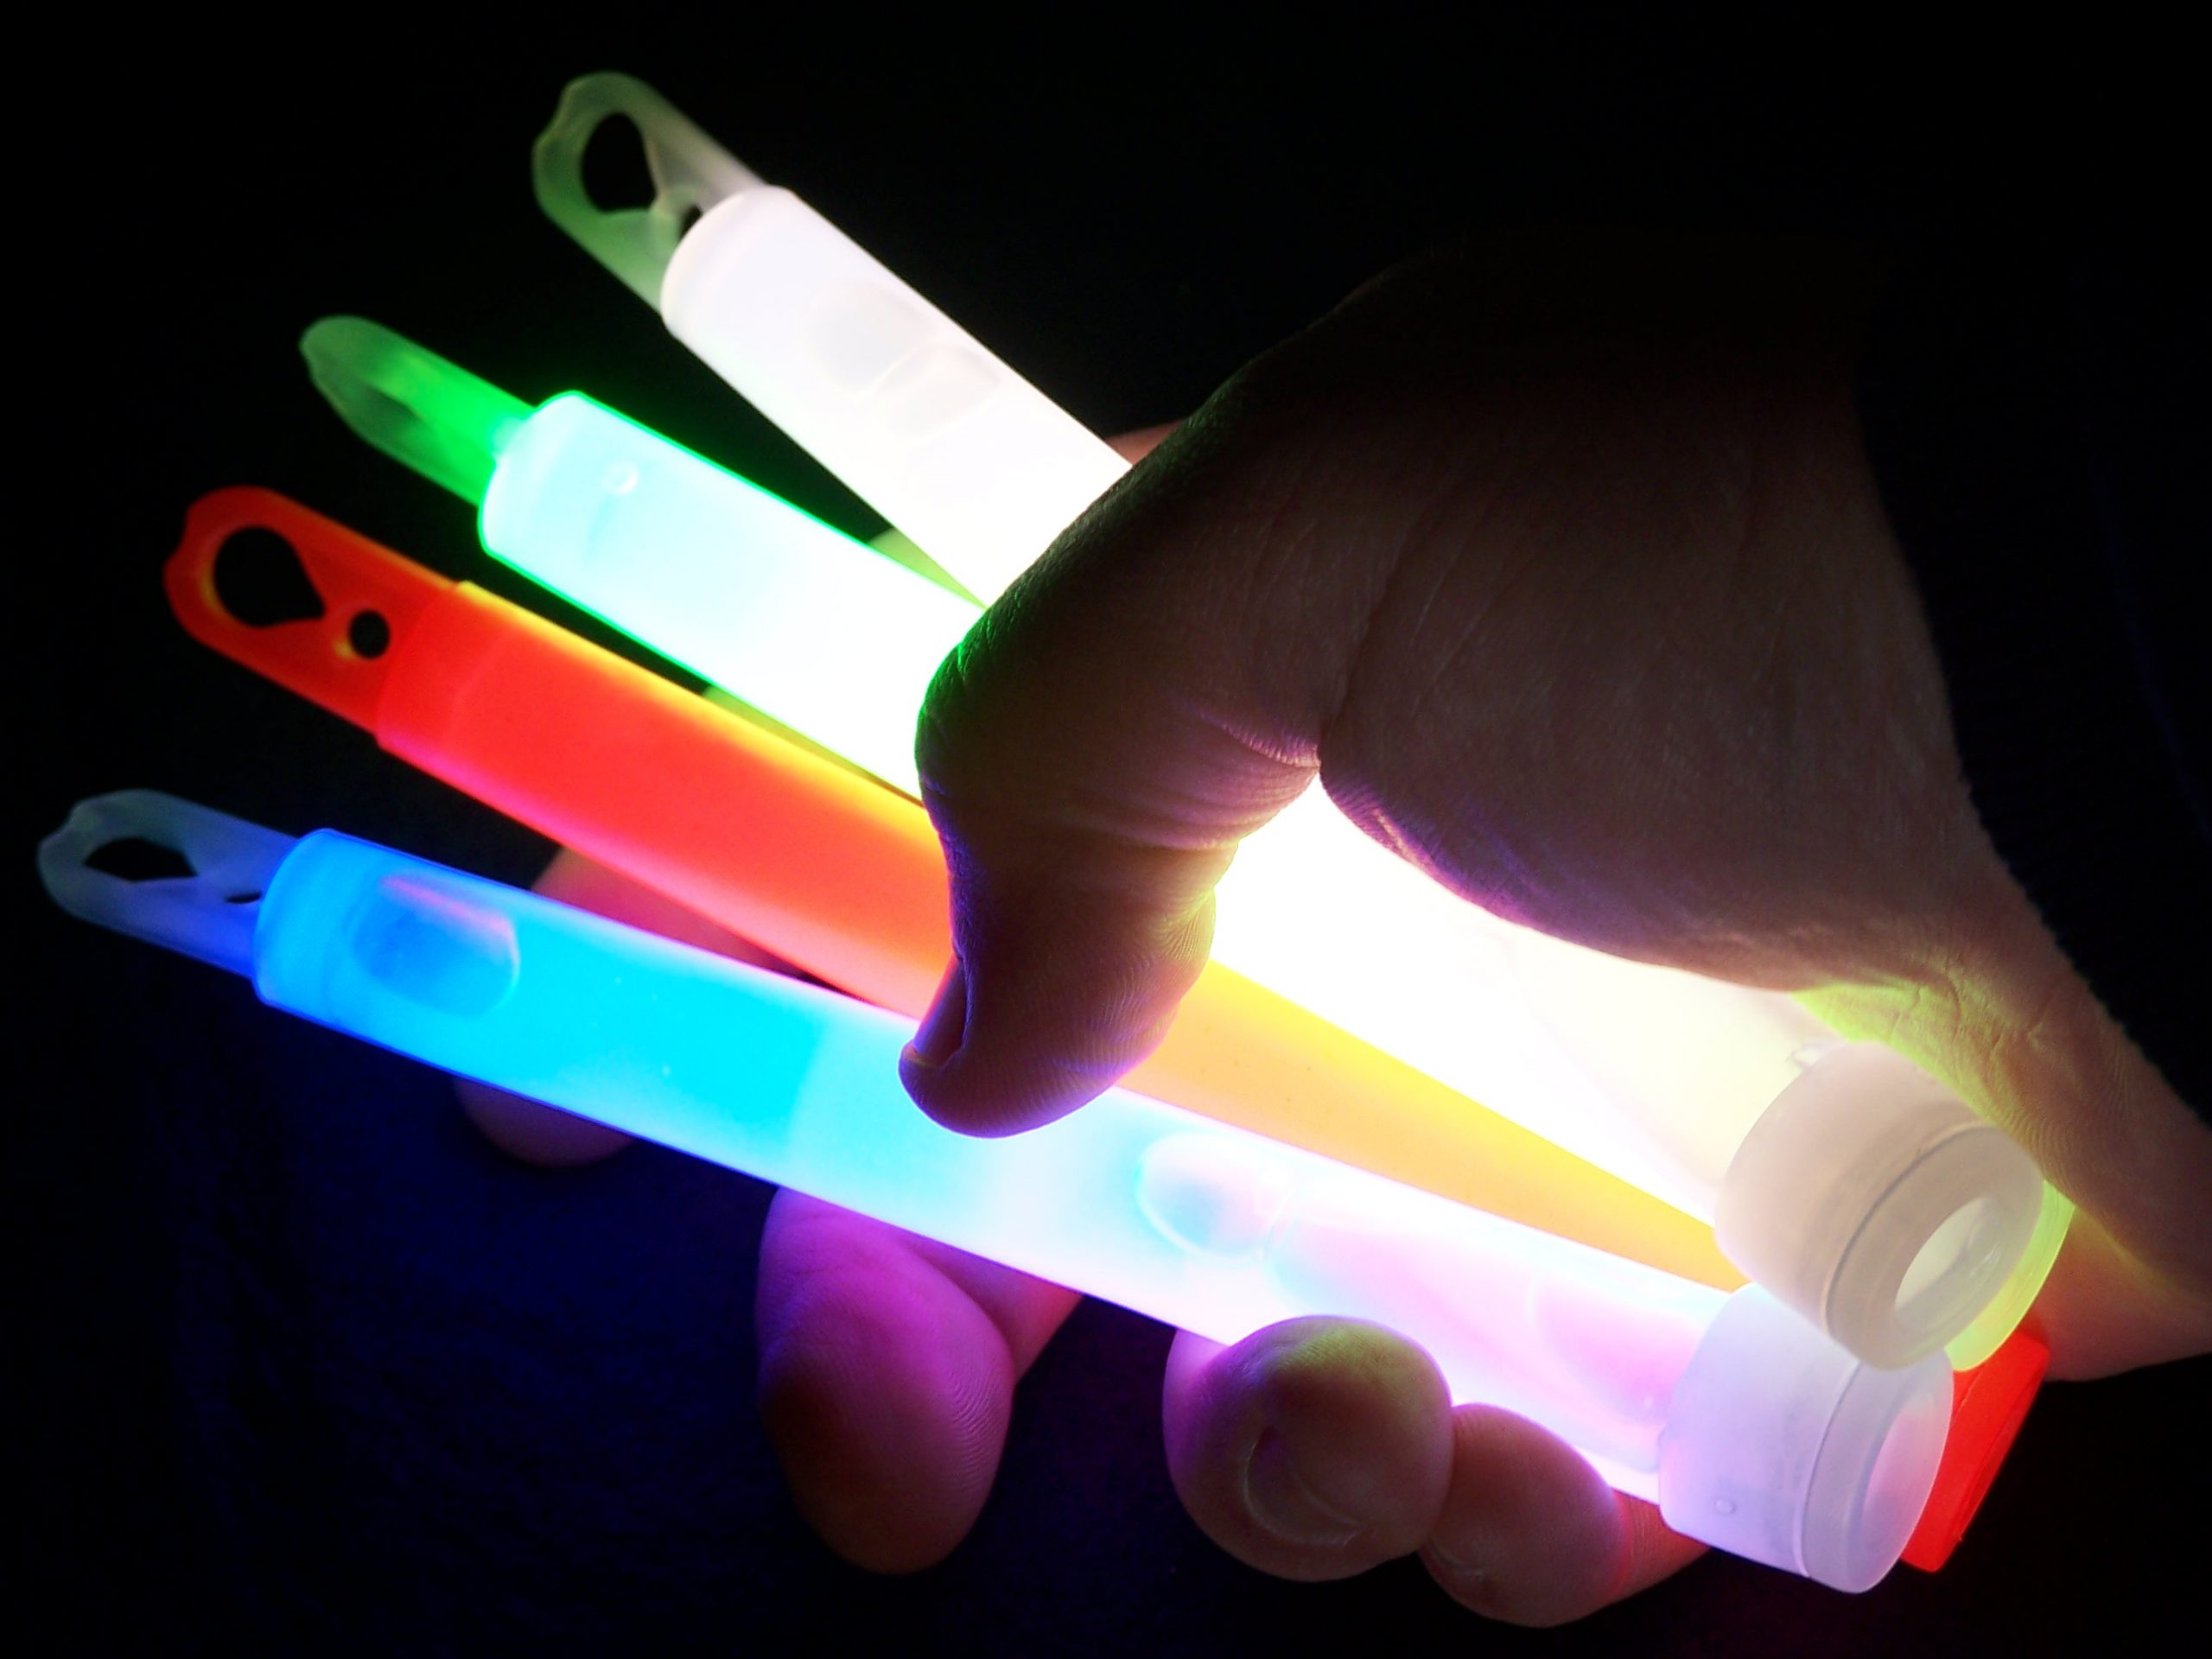 A hand in the dark holding four different colored, glowing light sticks.